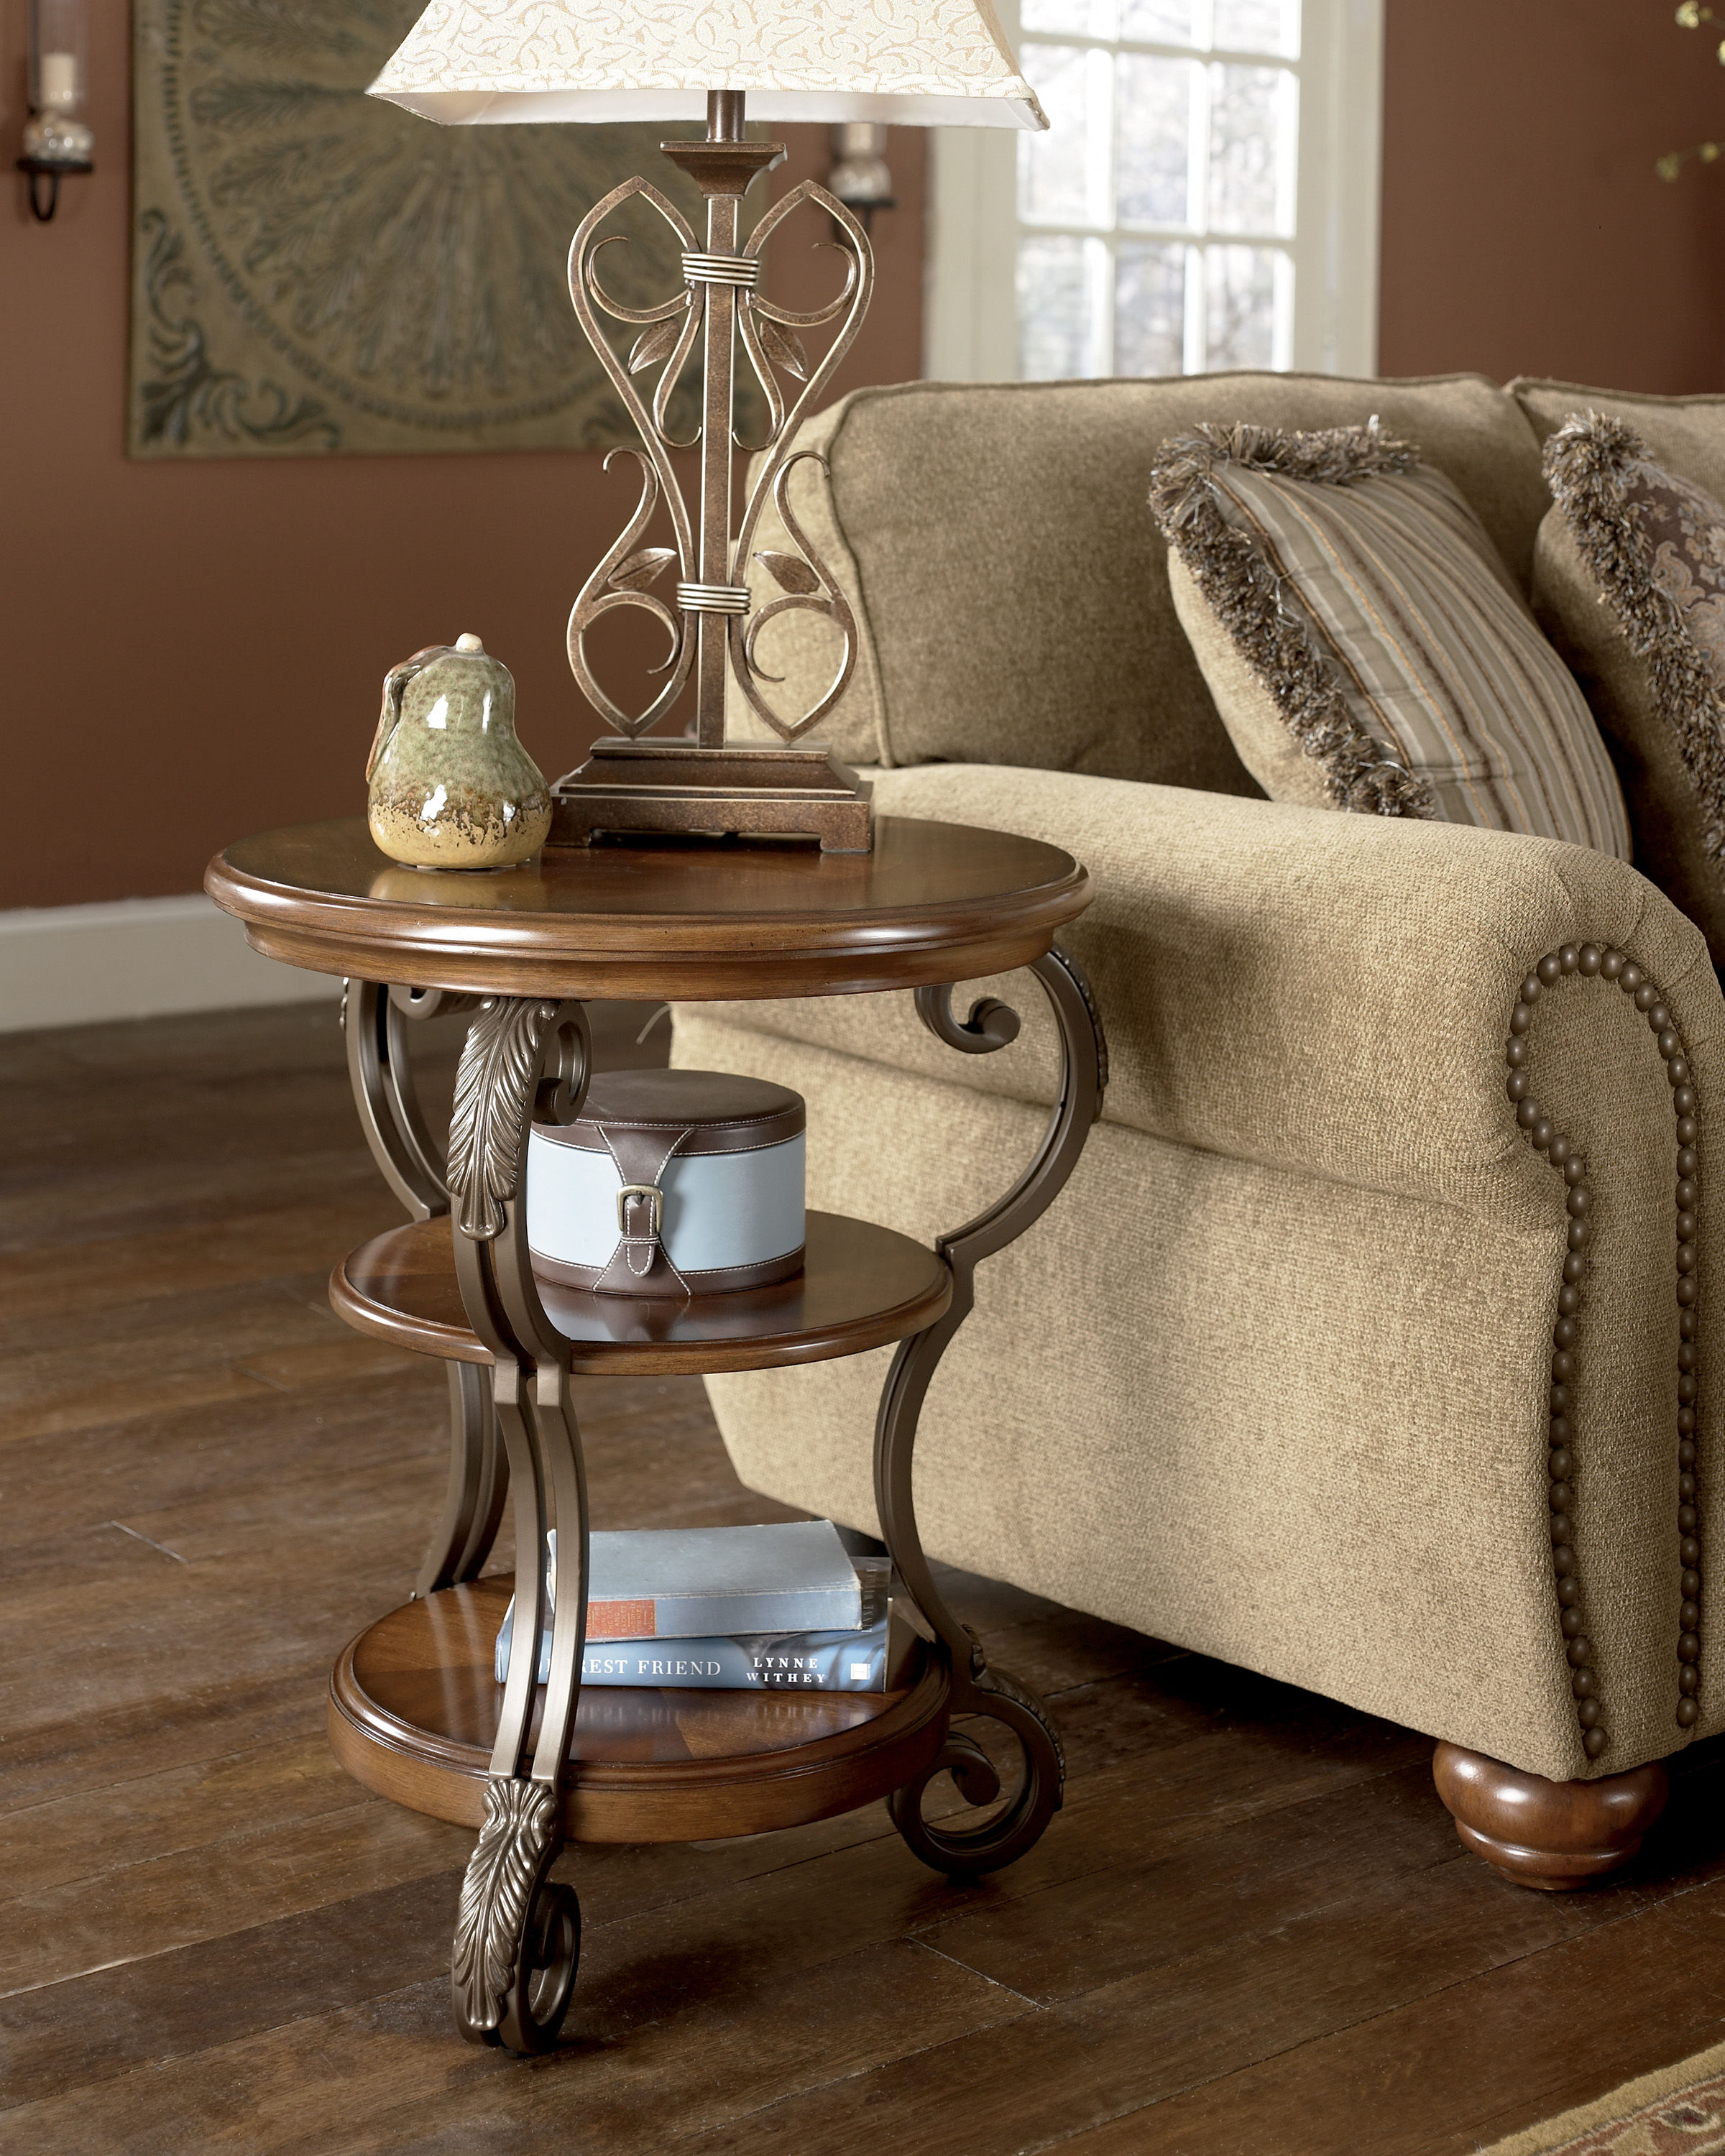 Ashley Furniture Nestor Chair Side Table The Classy Home